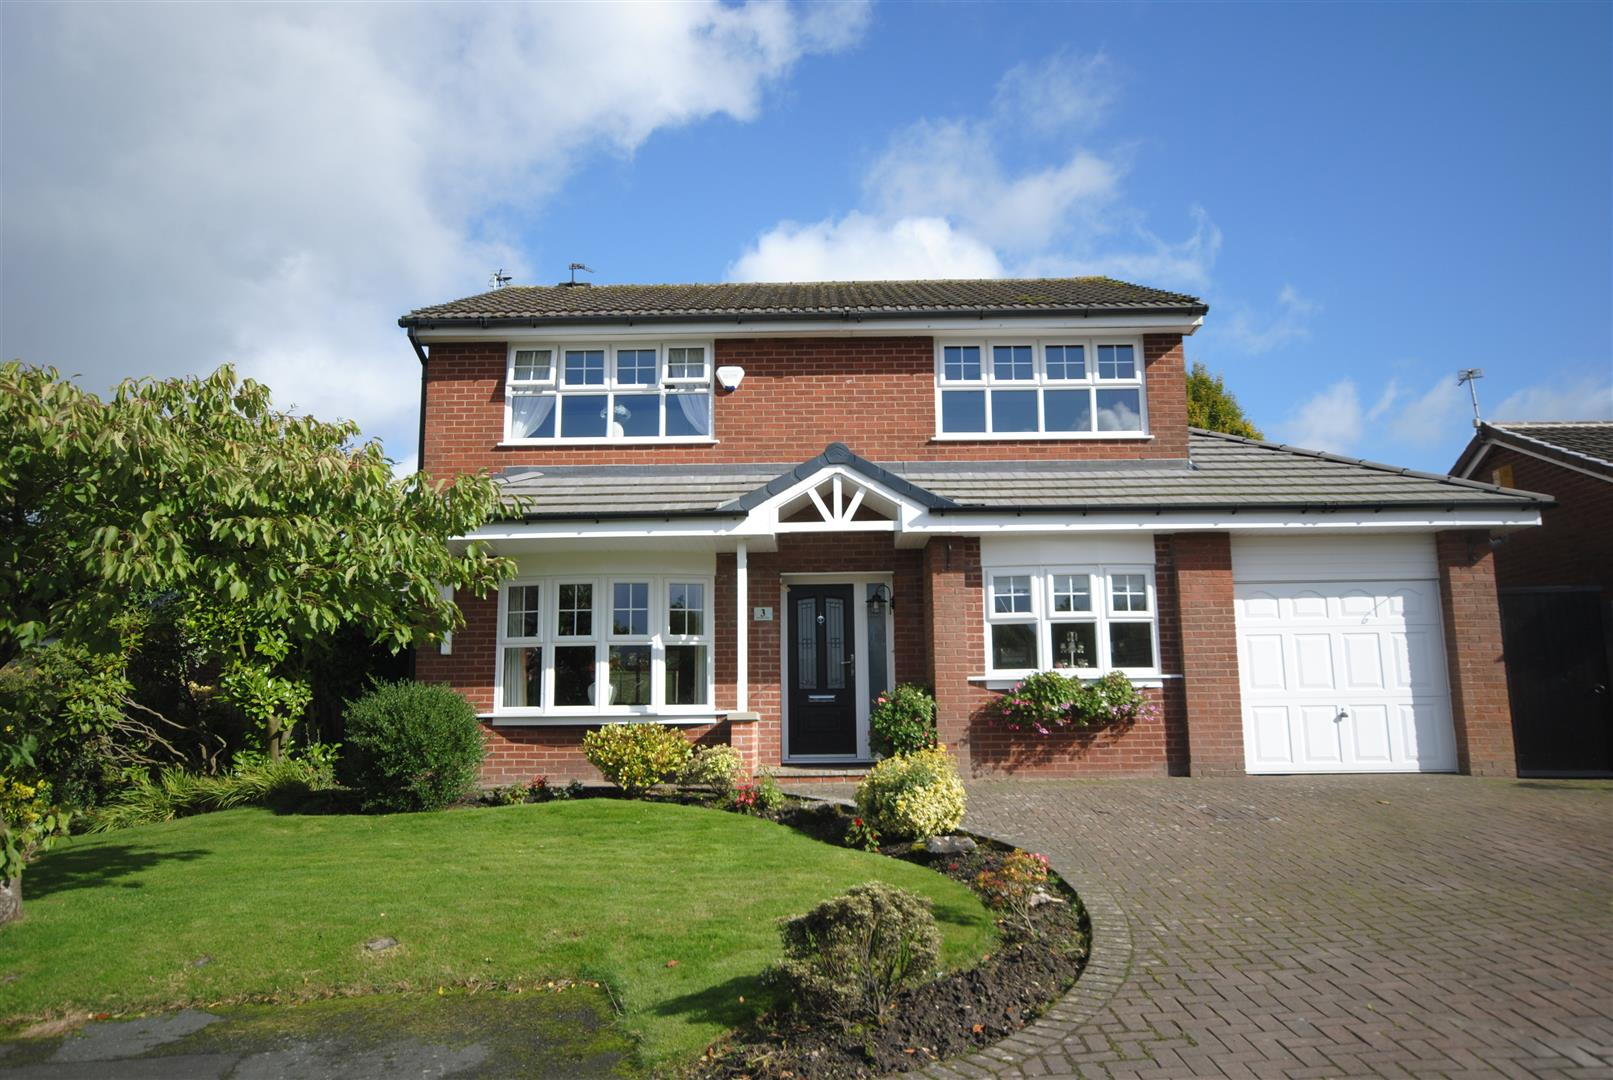 4 Bedrooms Detached House for sale in Stretton Close, Standish, Wigan